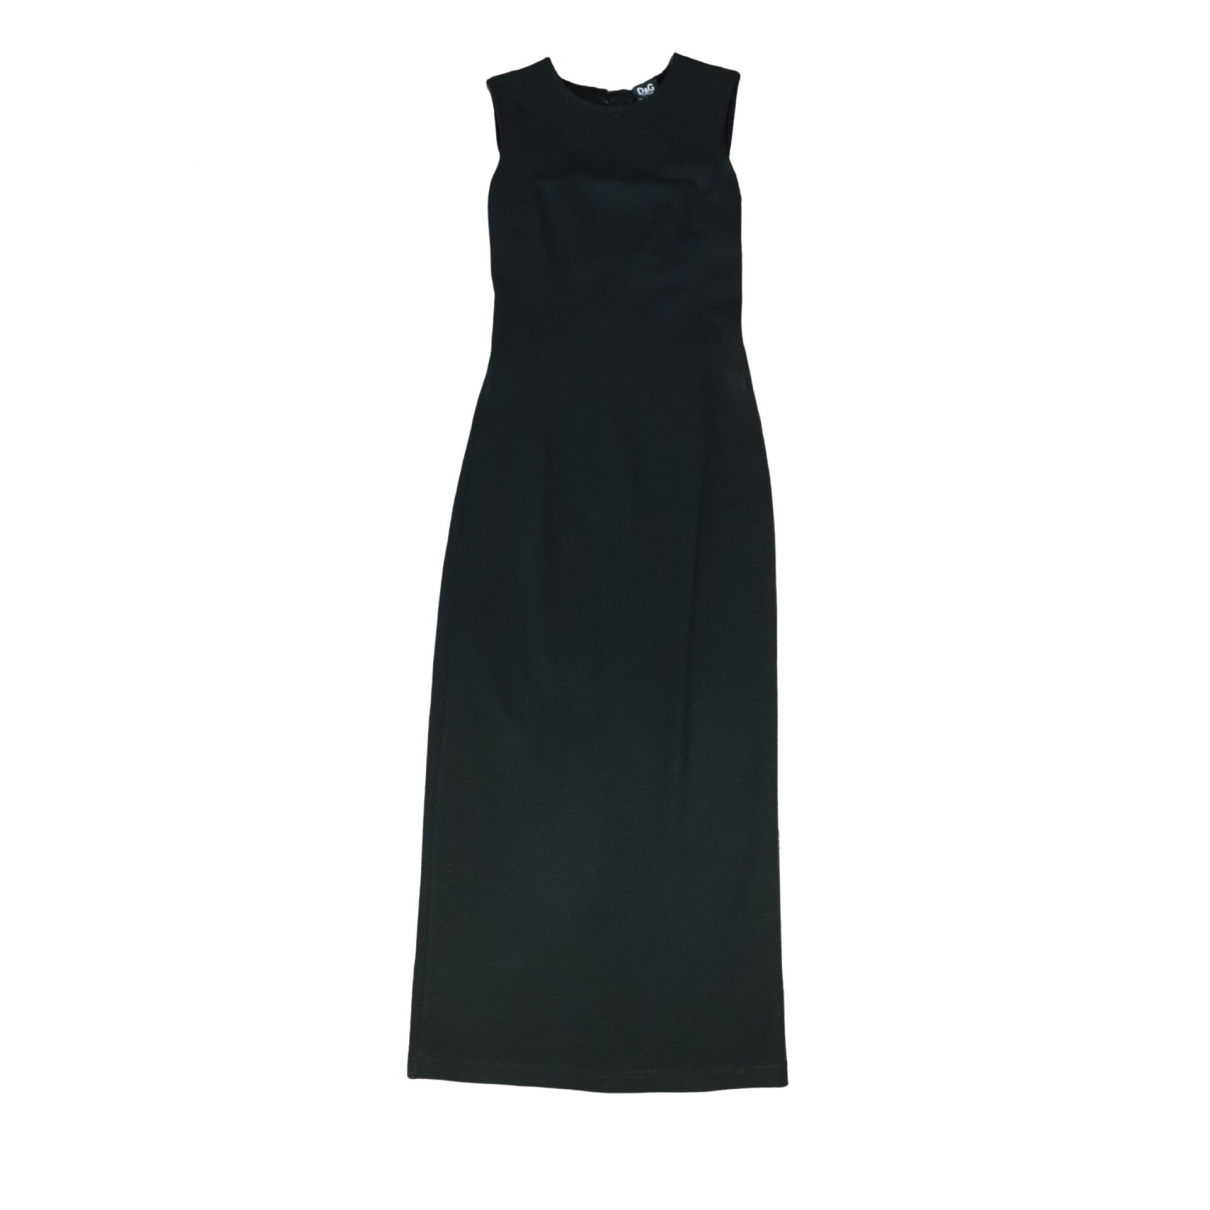 Dolce & Gabbana \N Black Wool dress for Women 38 IT